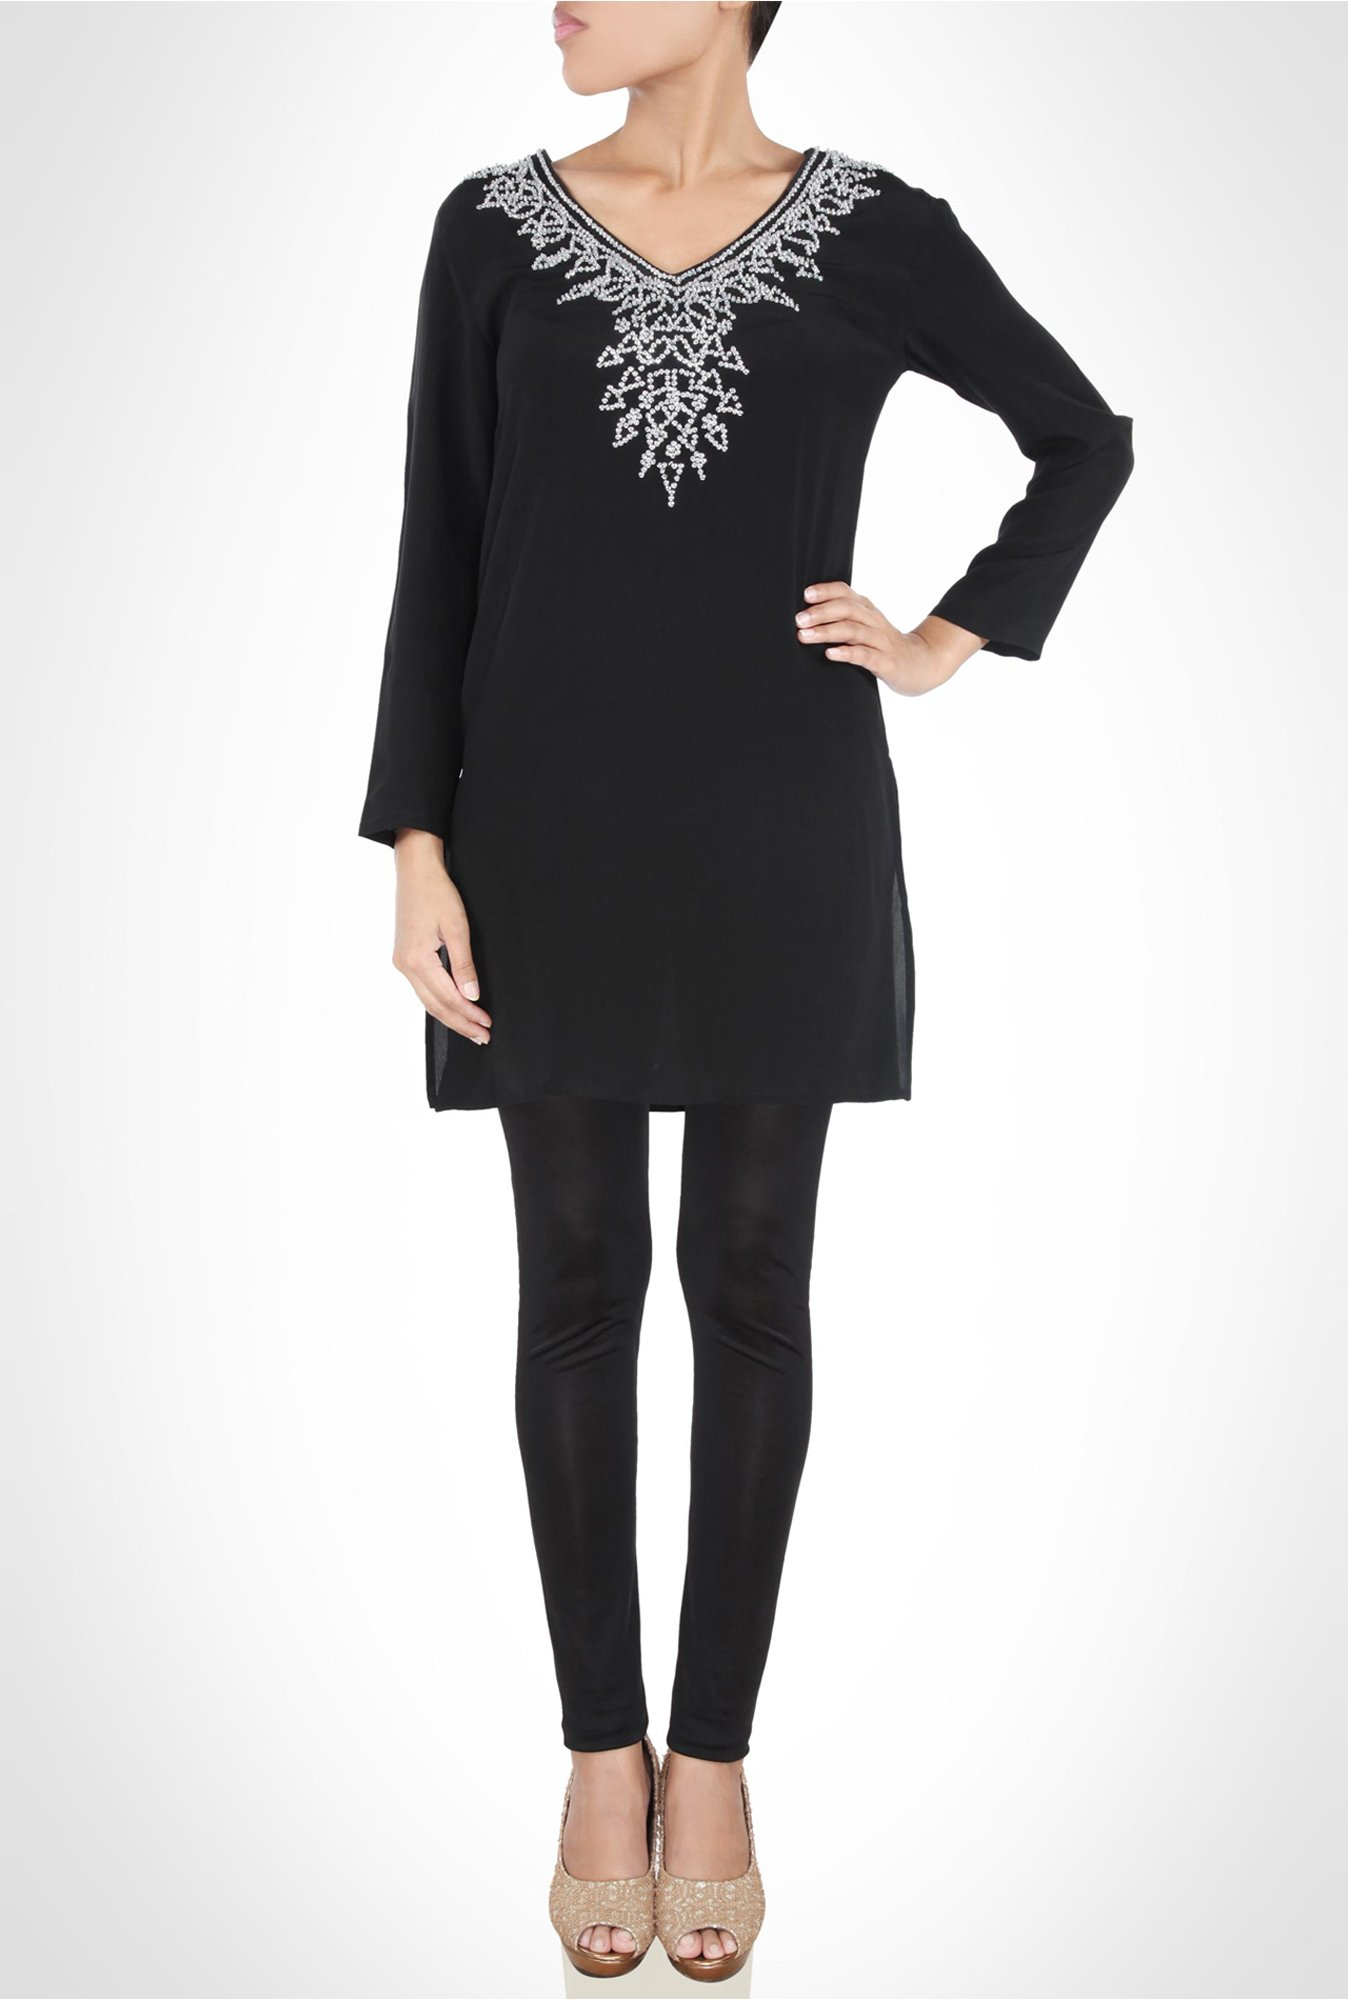 Rinku Dalmal Designer Wear Black Tunic by Kimaya